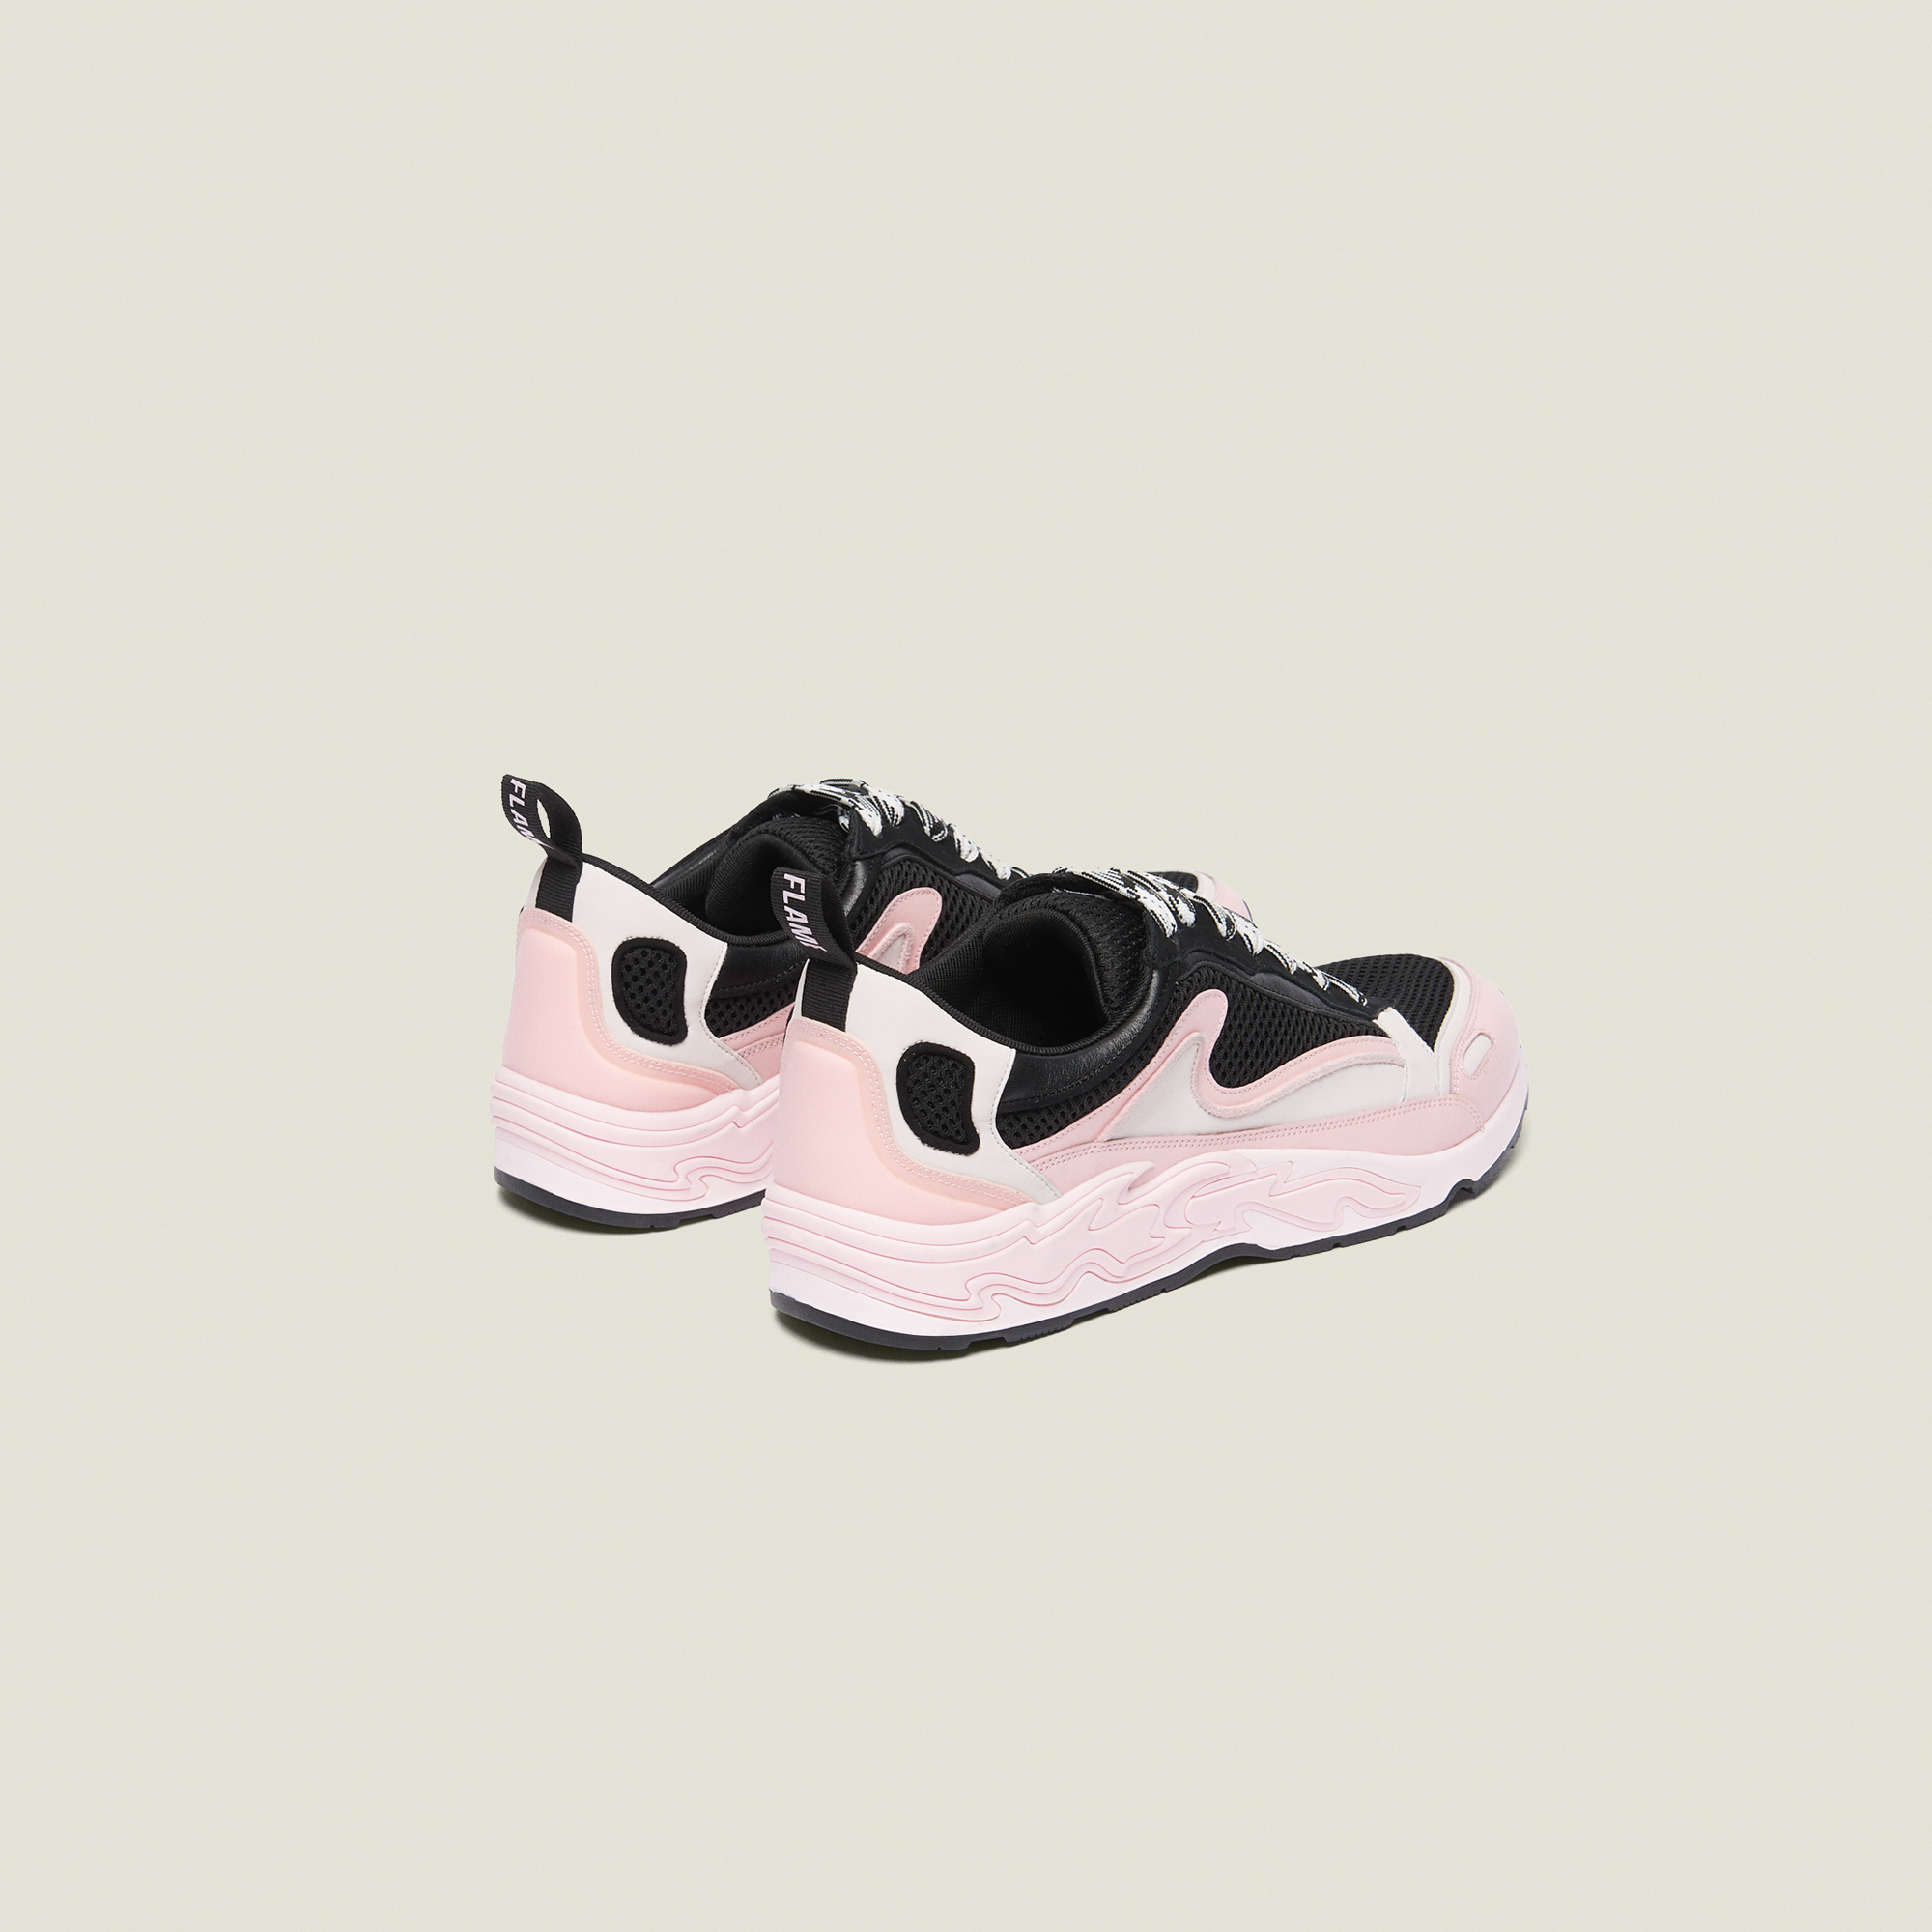 39a43b61d0 ... Flame sneakers   Shoes color Rose pastel ...